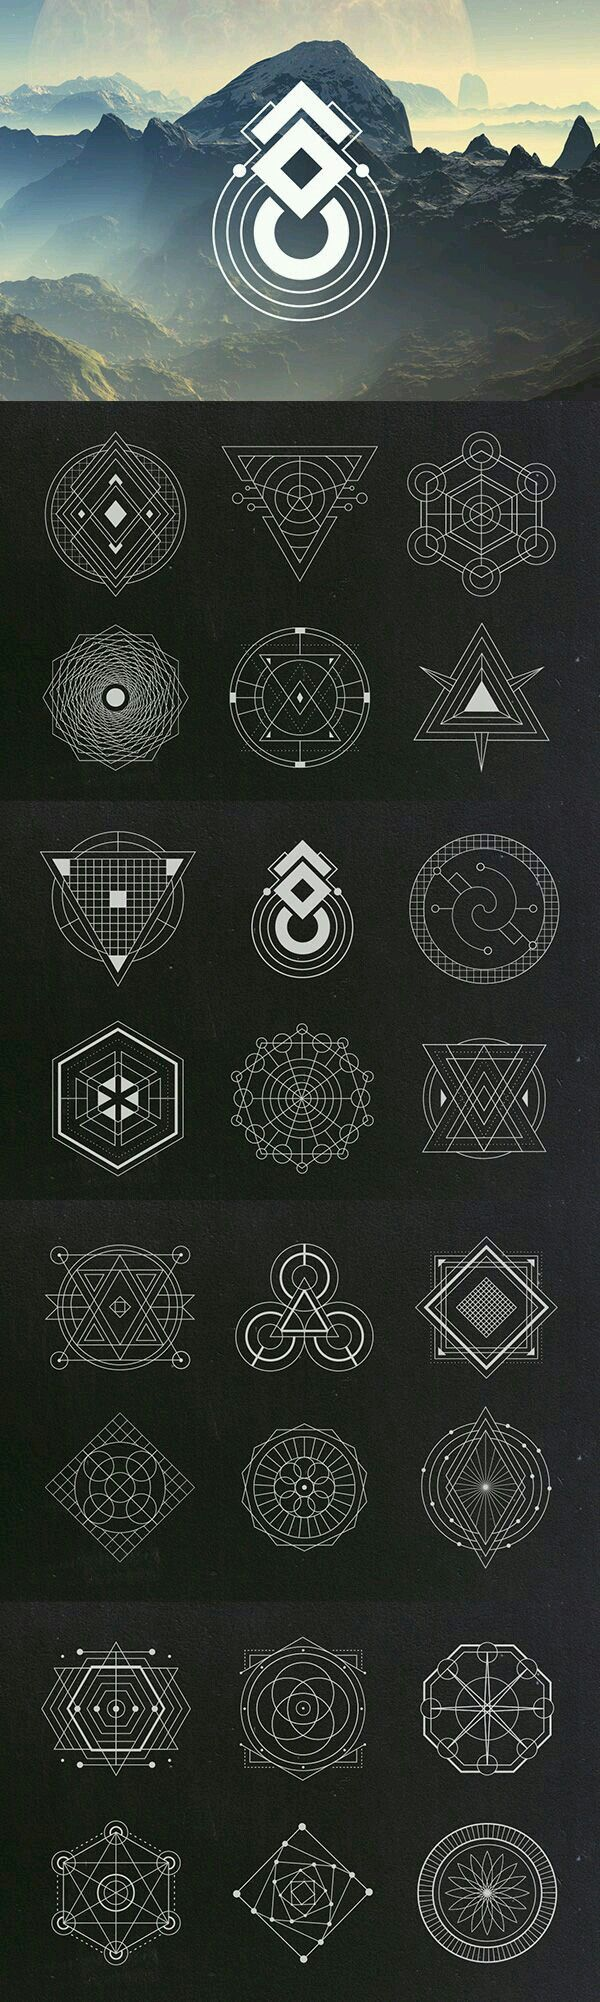 Some abstract Symbols